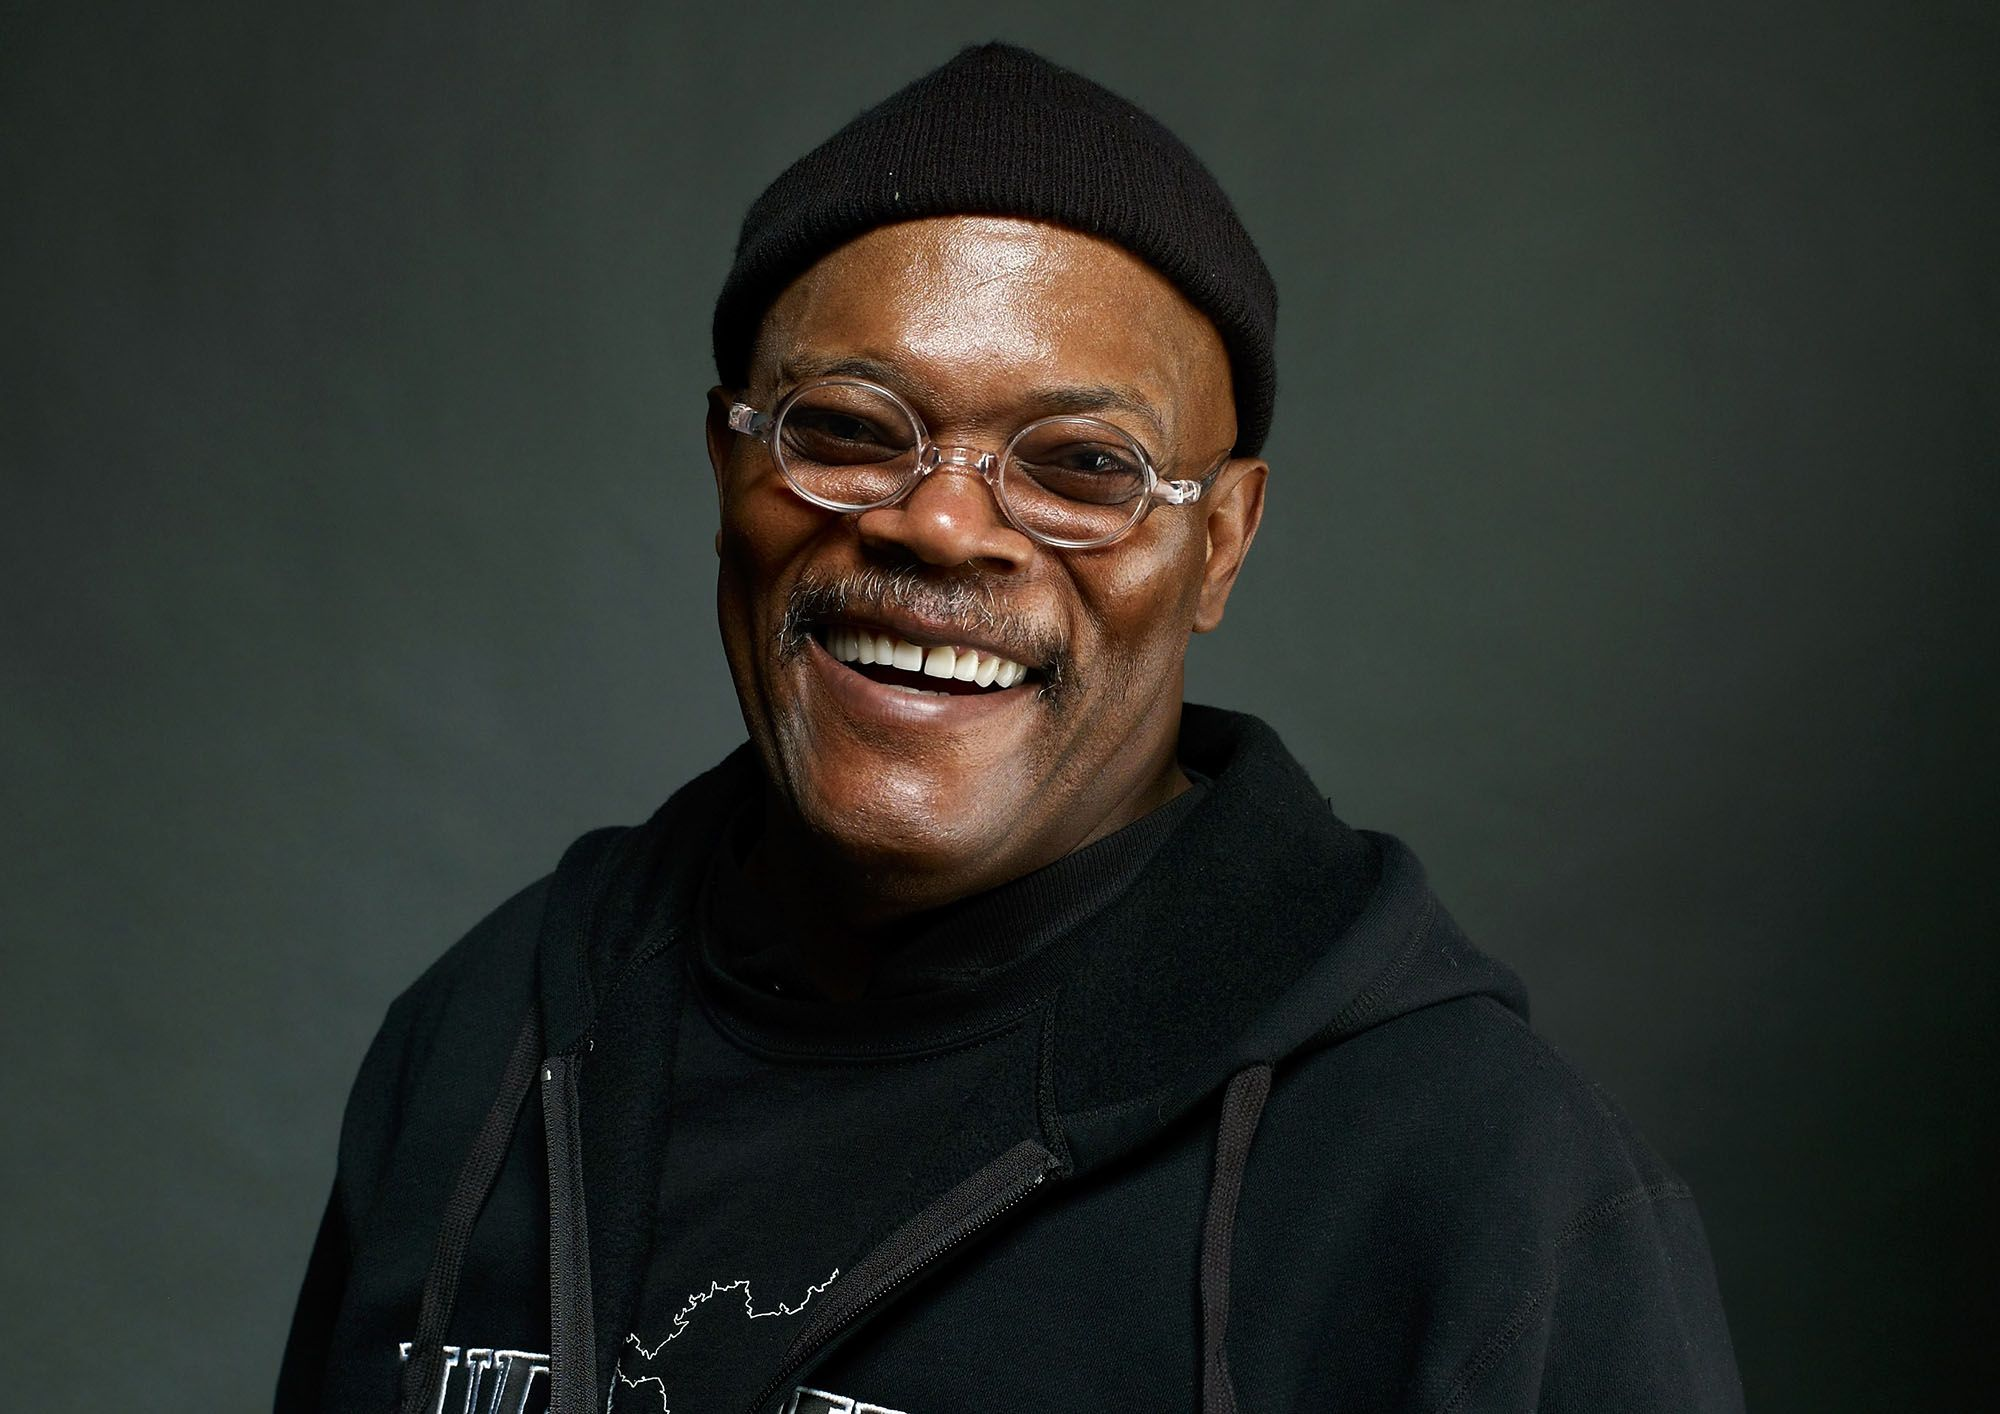 Watch: Samuel L Jackson talks Men's Health